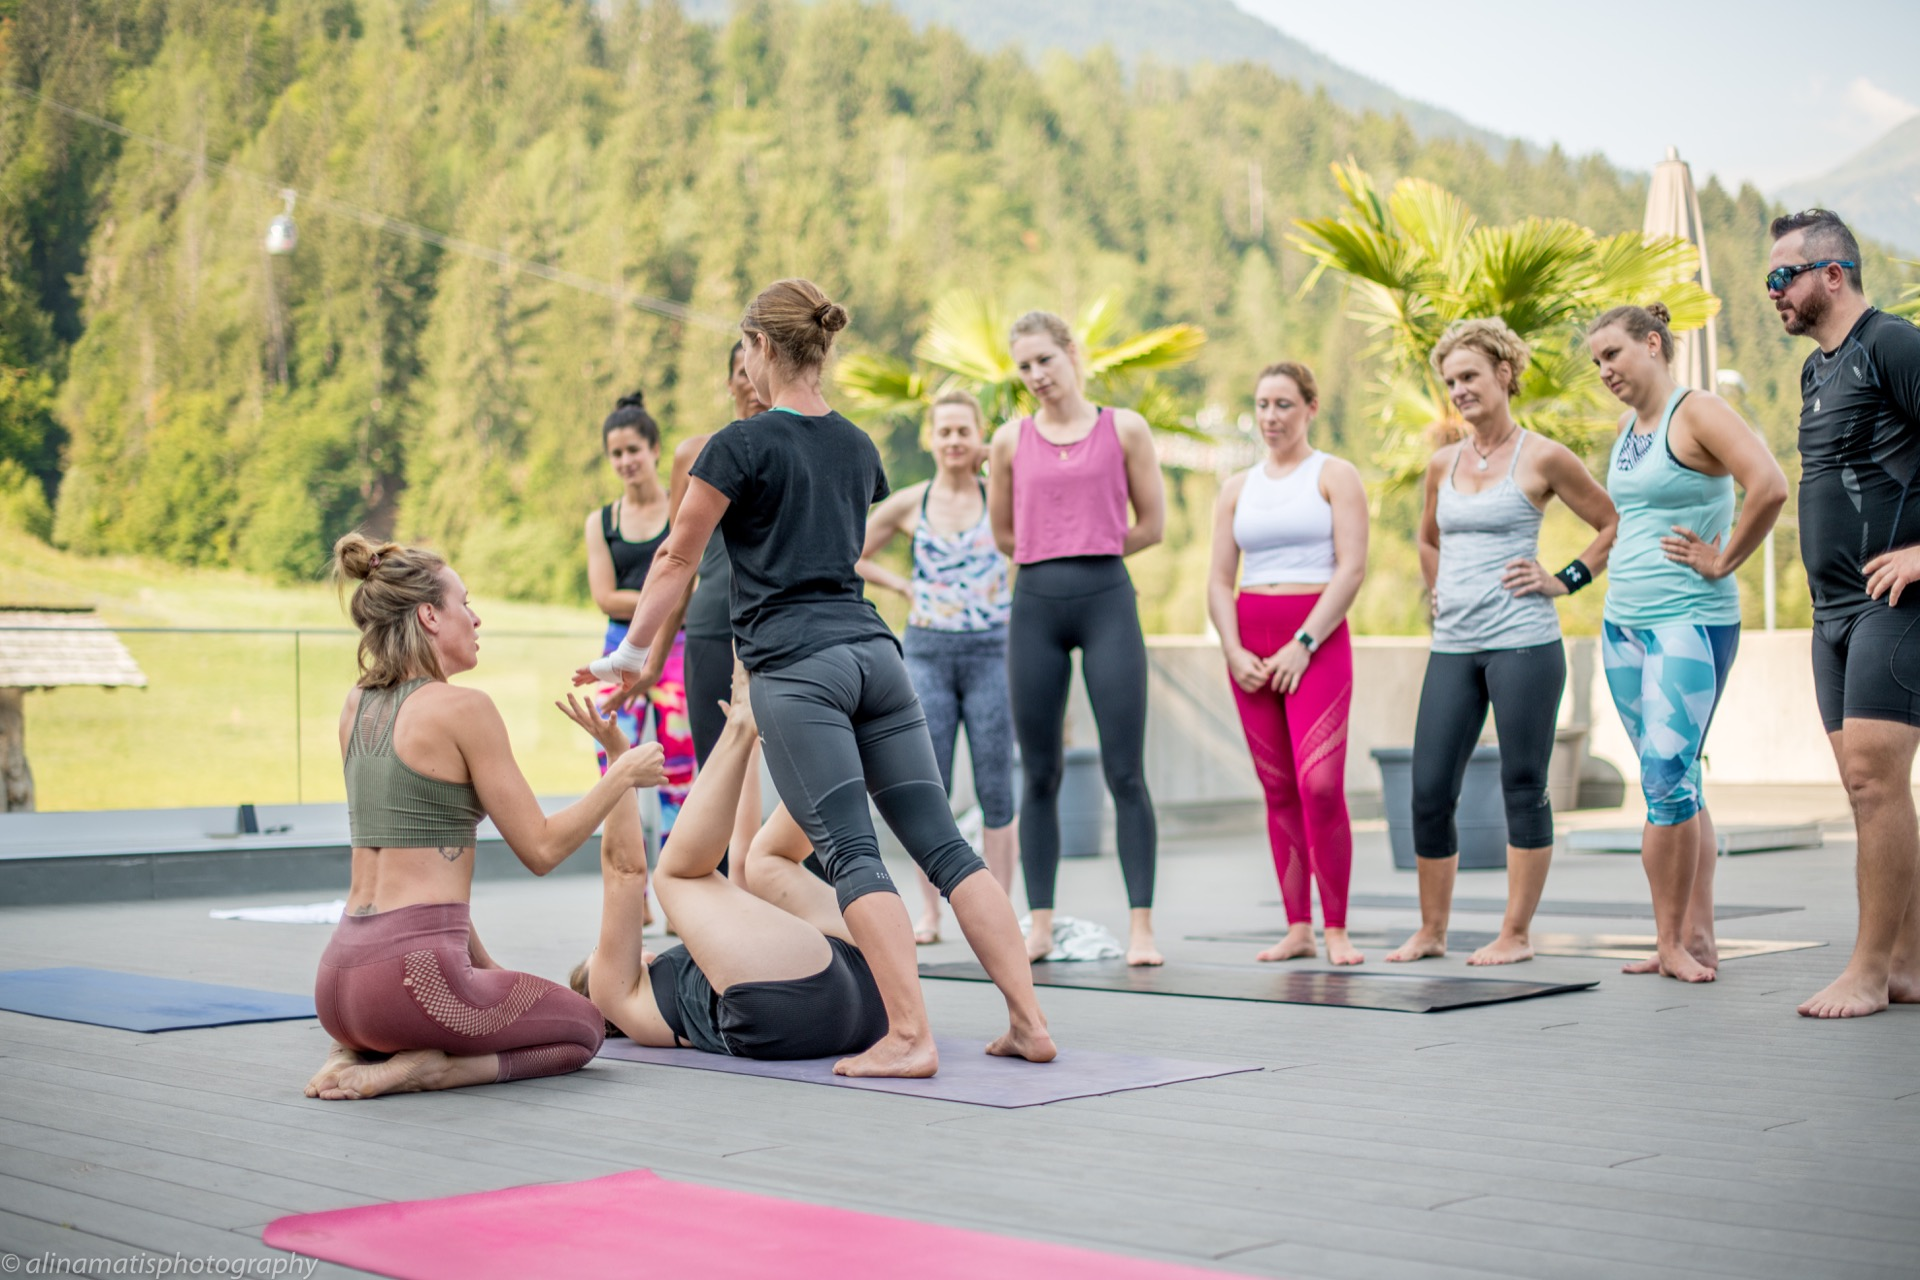 Hie-Kim-Friends-2018-Yoga-Retreat-Alina-Matis-Photography-072 - Hie Kim Yoga - Yoga Retreat - Yoga Workshops und Reisen